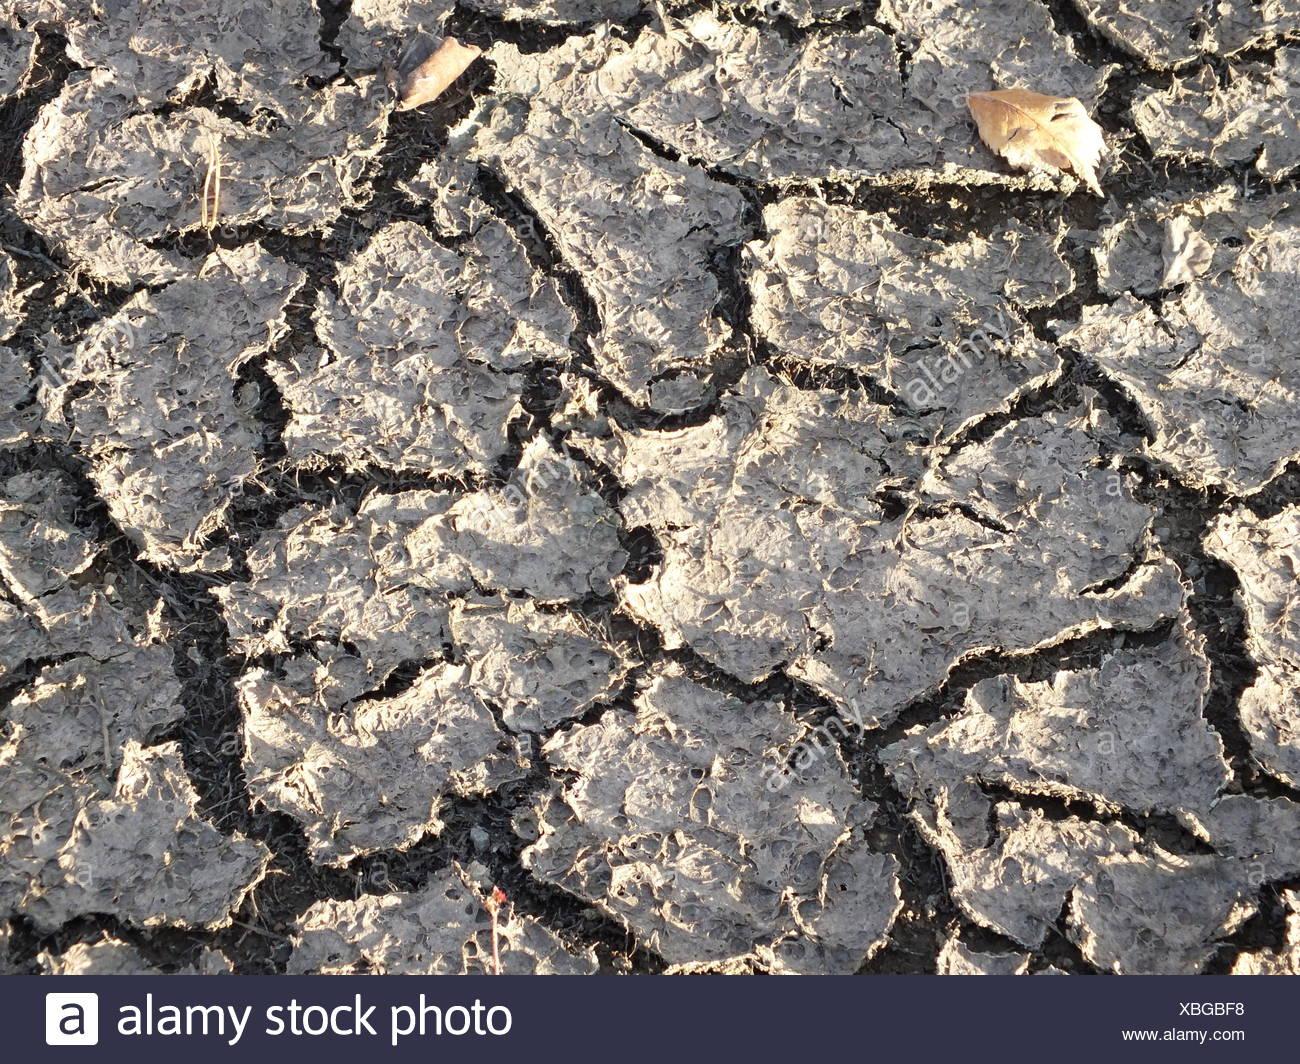 completely dried crust - Stock Image